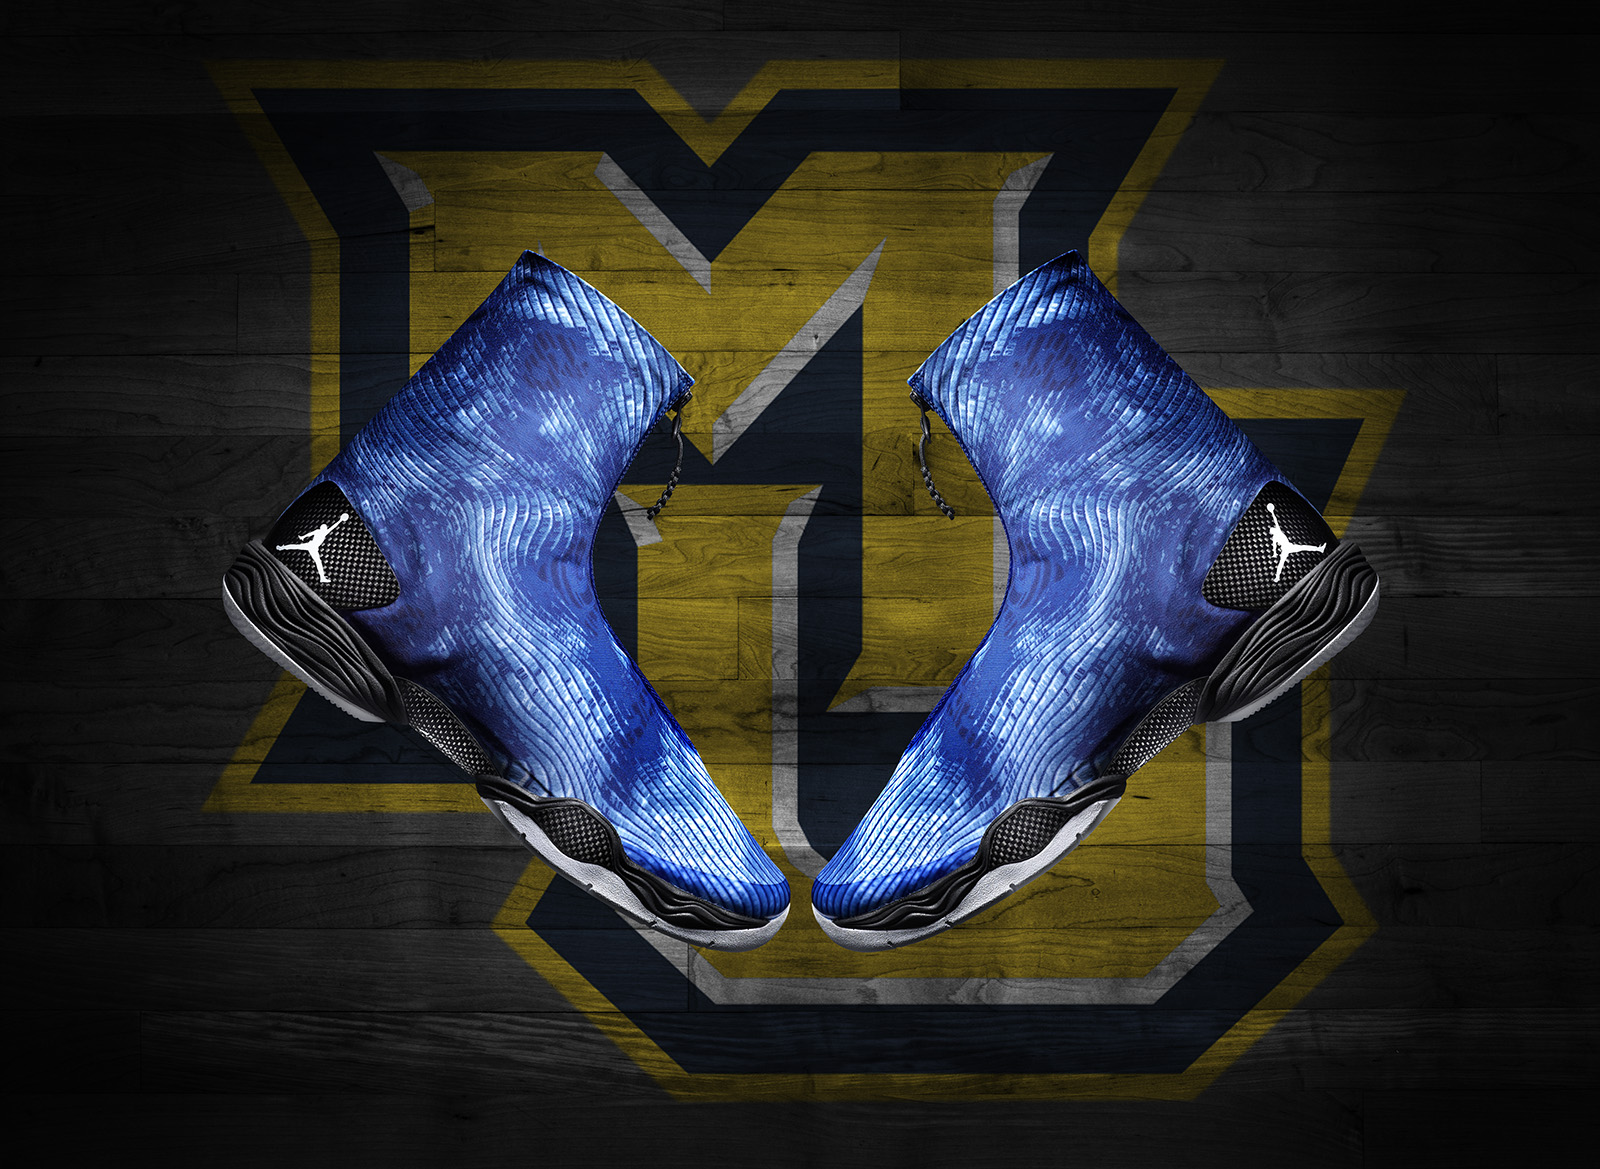 Jordan brand schools to debut air jordan xx8 on court this week lo hi biocorpaavc Gallery